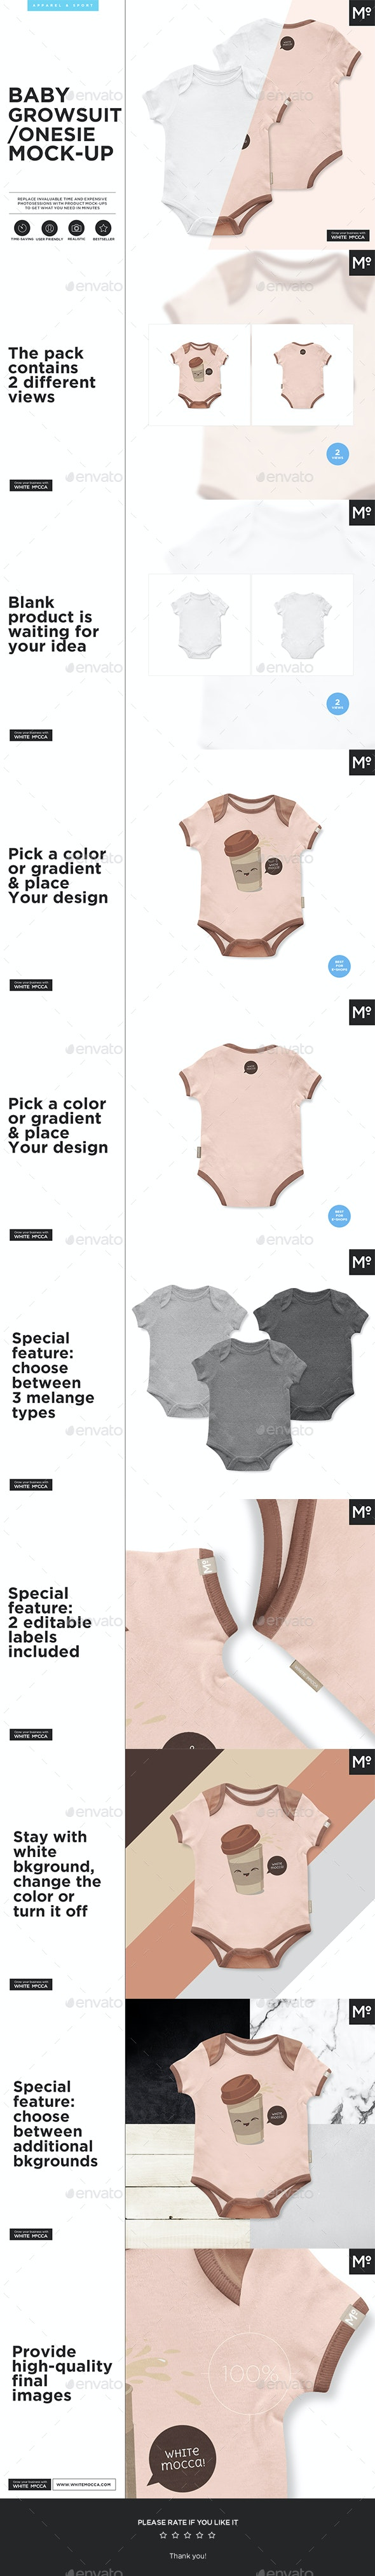 Baby Growsuit / Onesie Mock-up - Miscellaneous Apparel